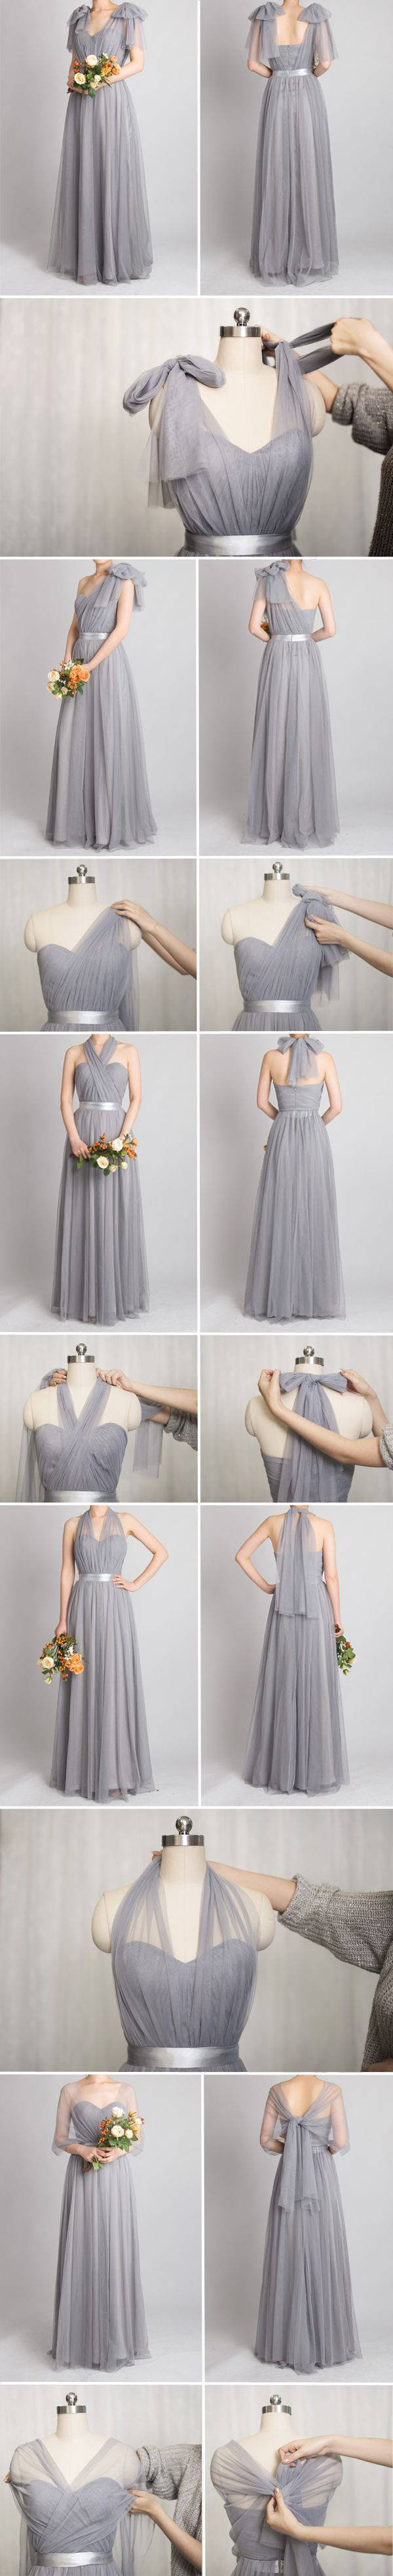 grey convertible bridesmaid dresses with tutorial #weddingcolorsinspiration #weddingpartyinspiration